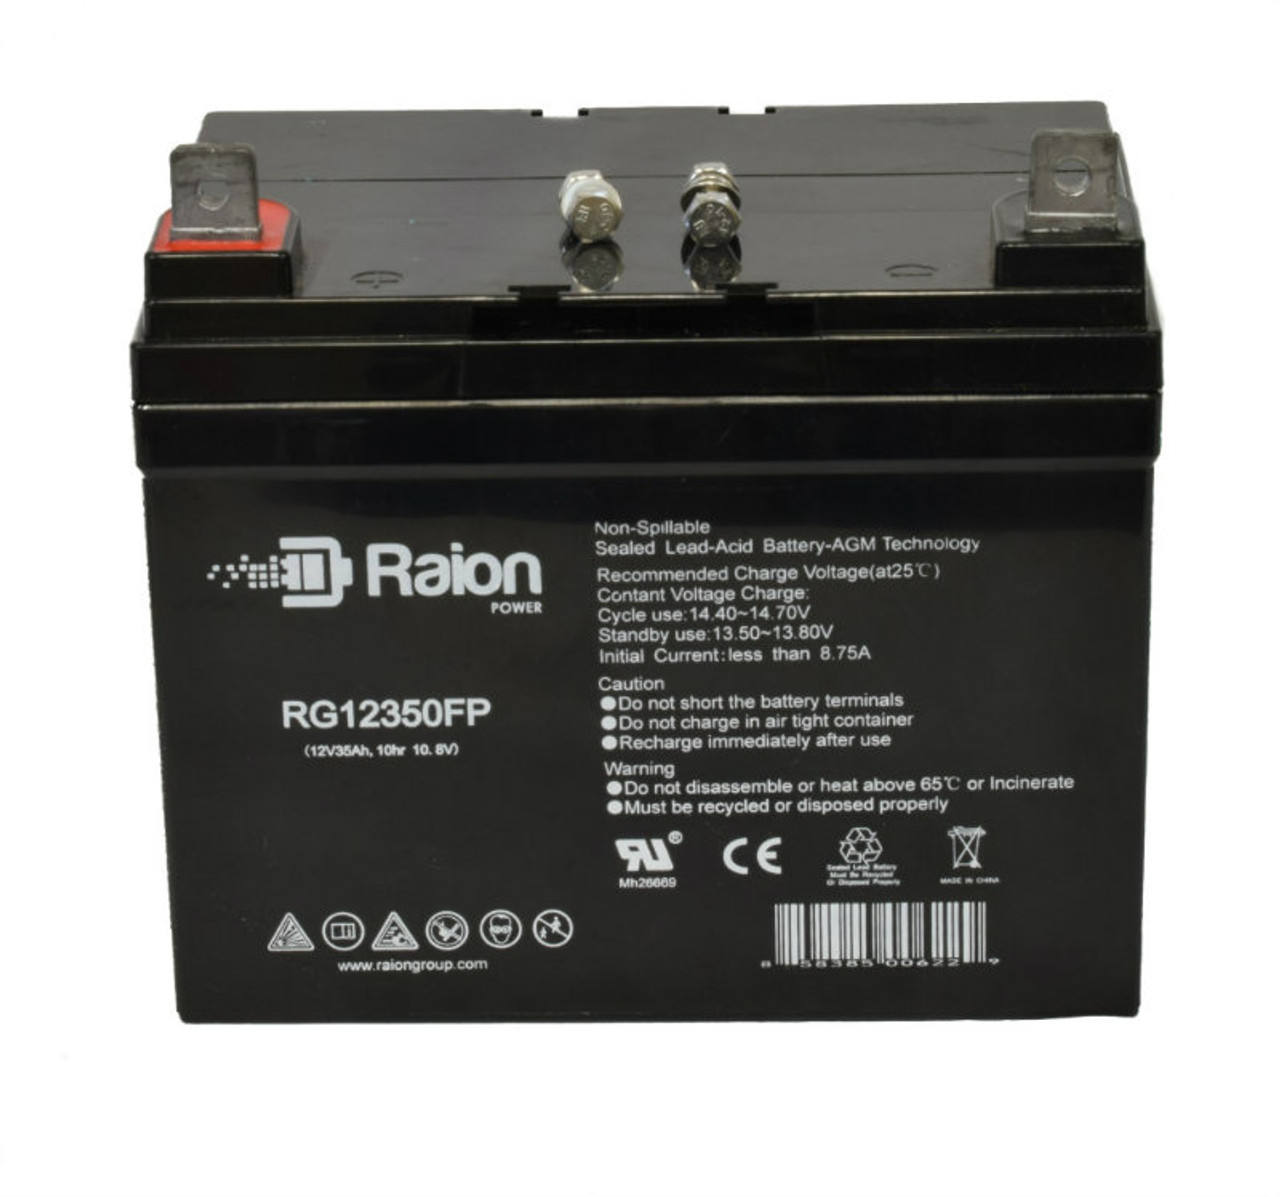 RG12350FP Sealed Lead Acid Battery Pack For Suntech Std Series U1 Mobility Scooter